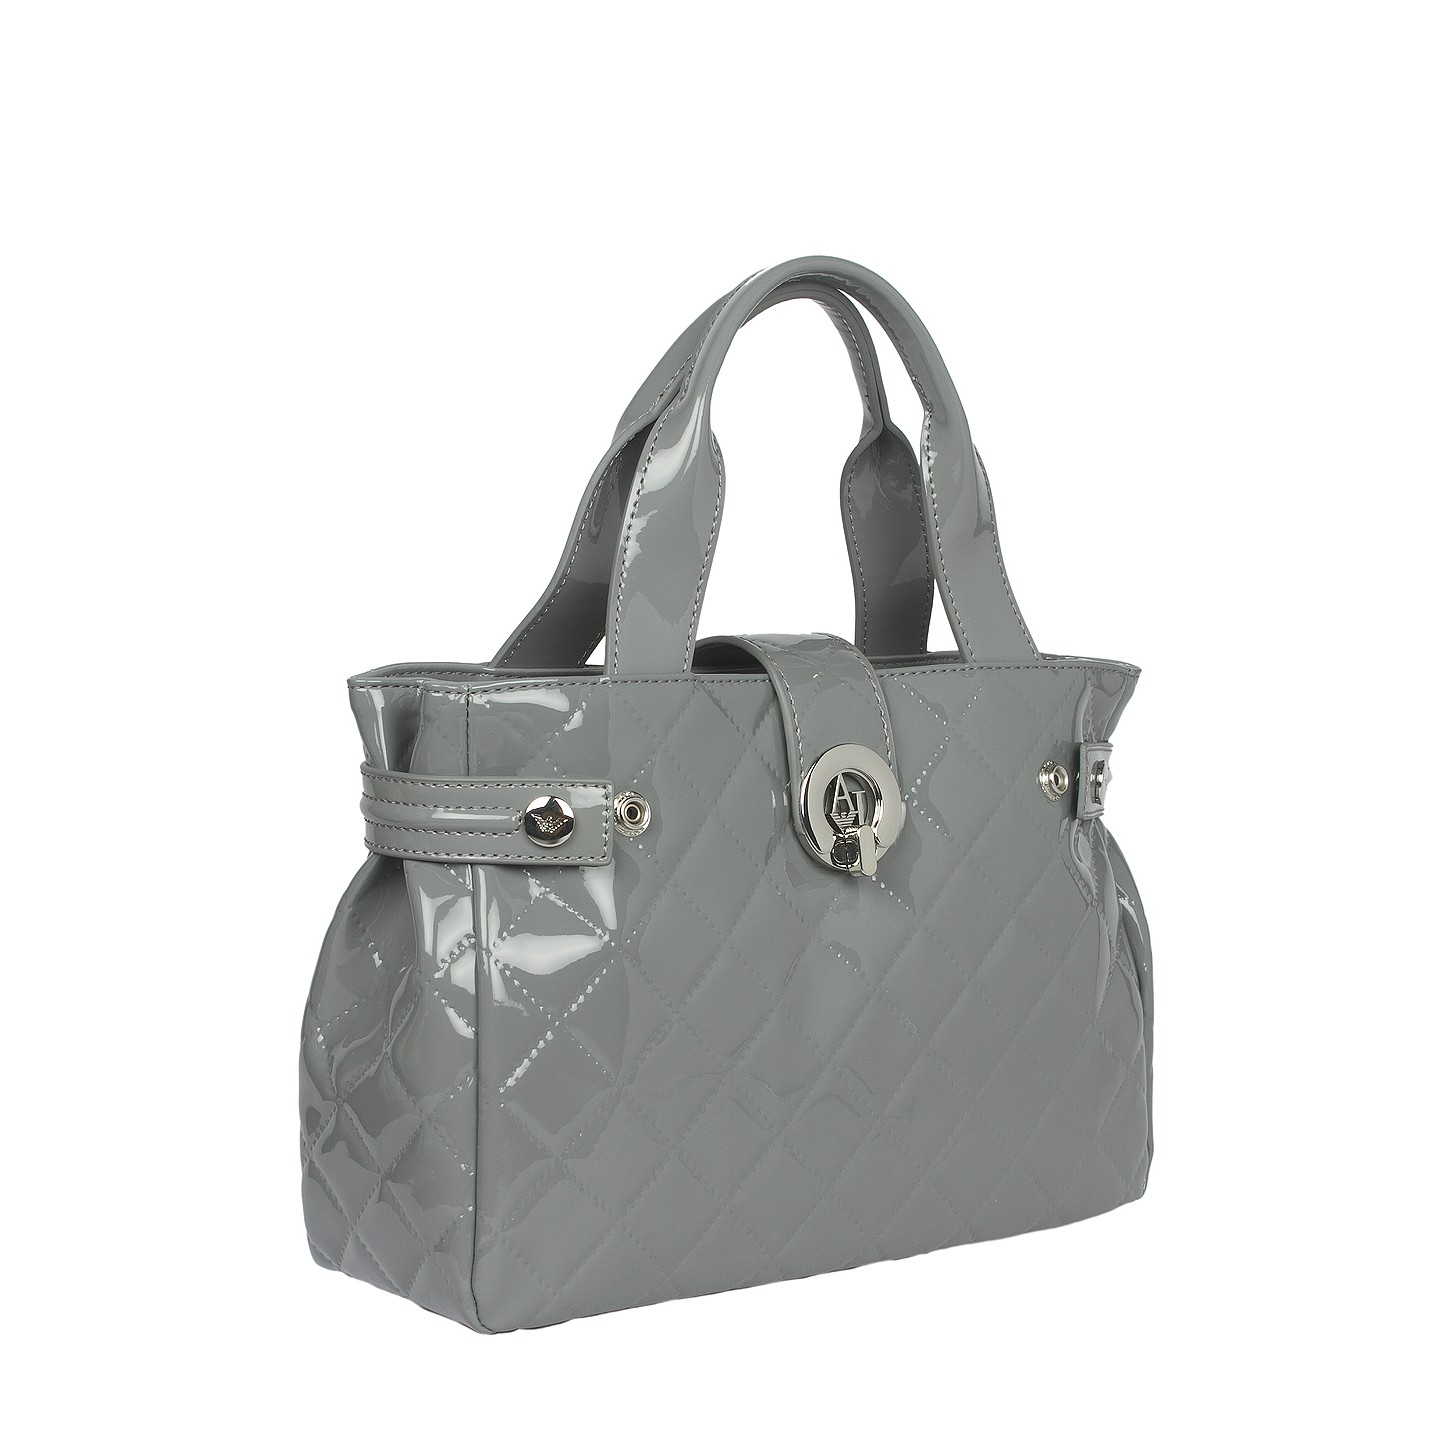 Armani Jeans V4 Patent Quilted East West Tote Bag - LabelCentric 13899e65bb5dd